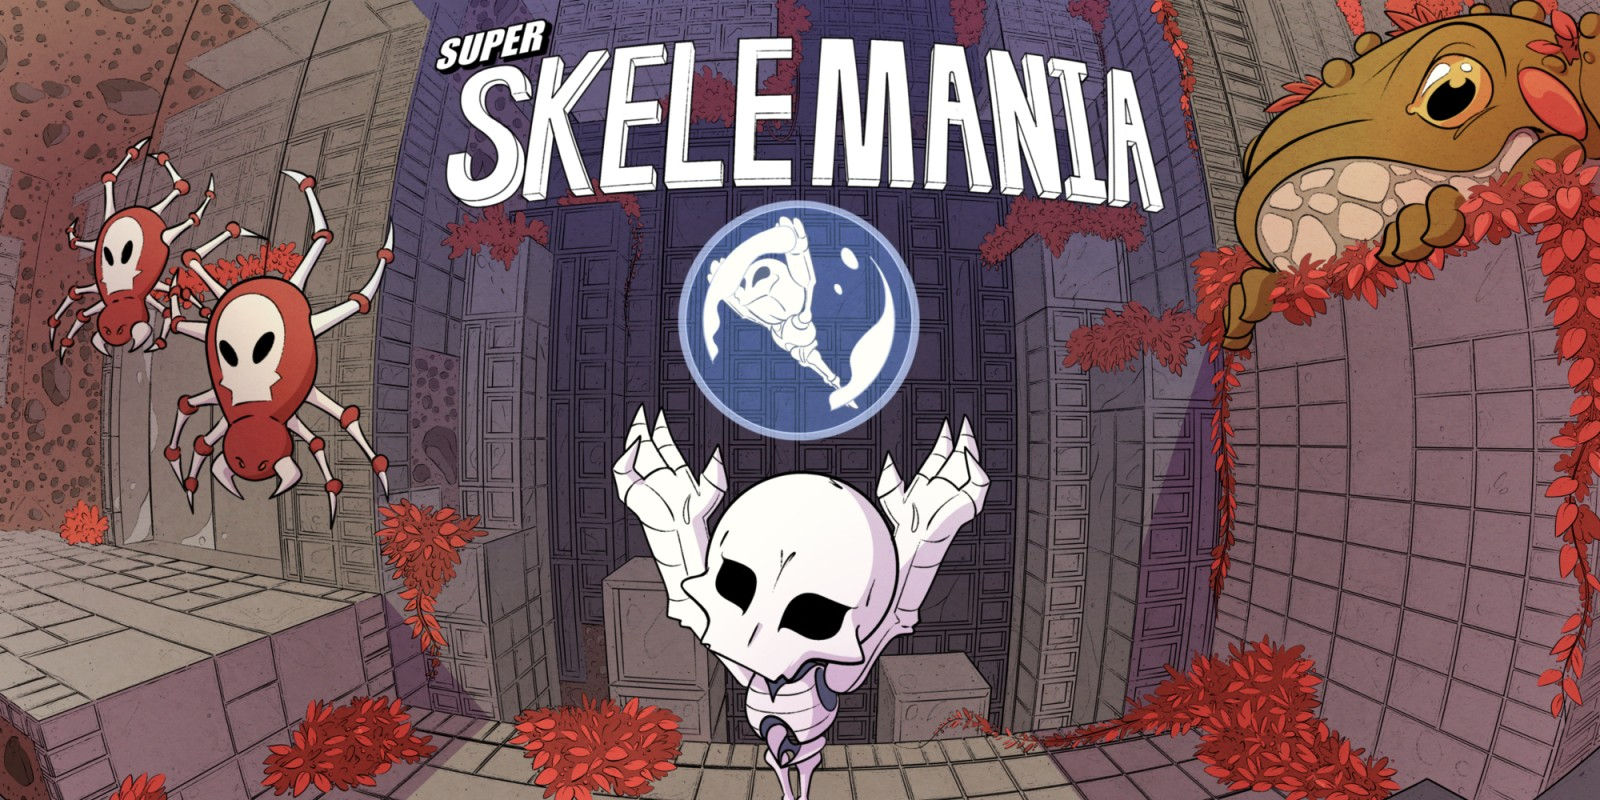 Super Skelemania